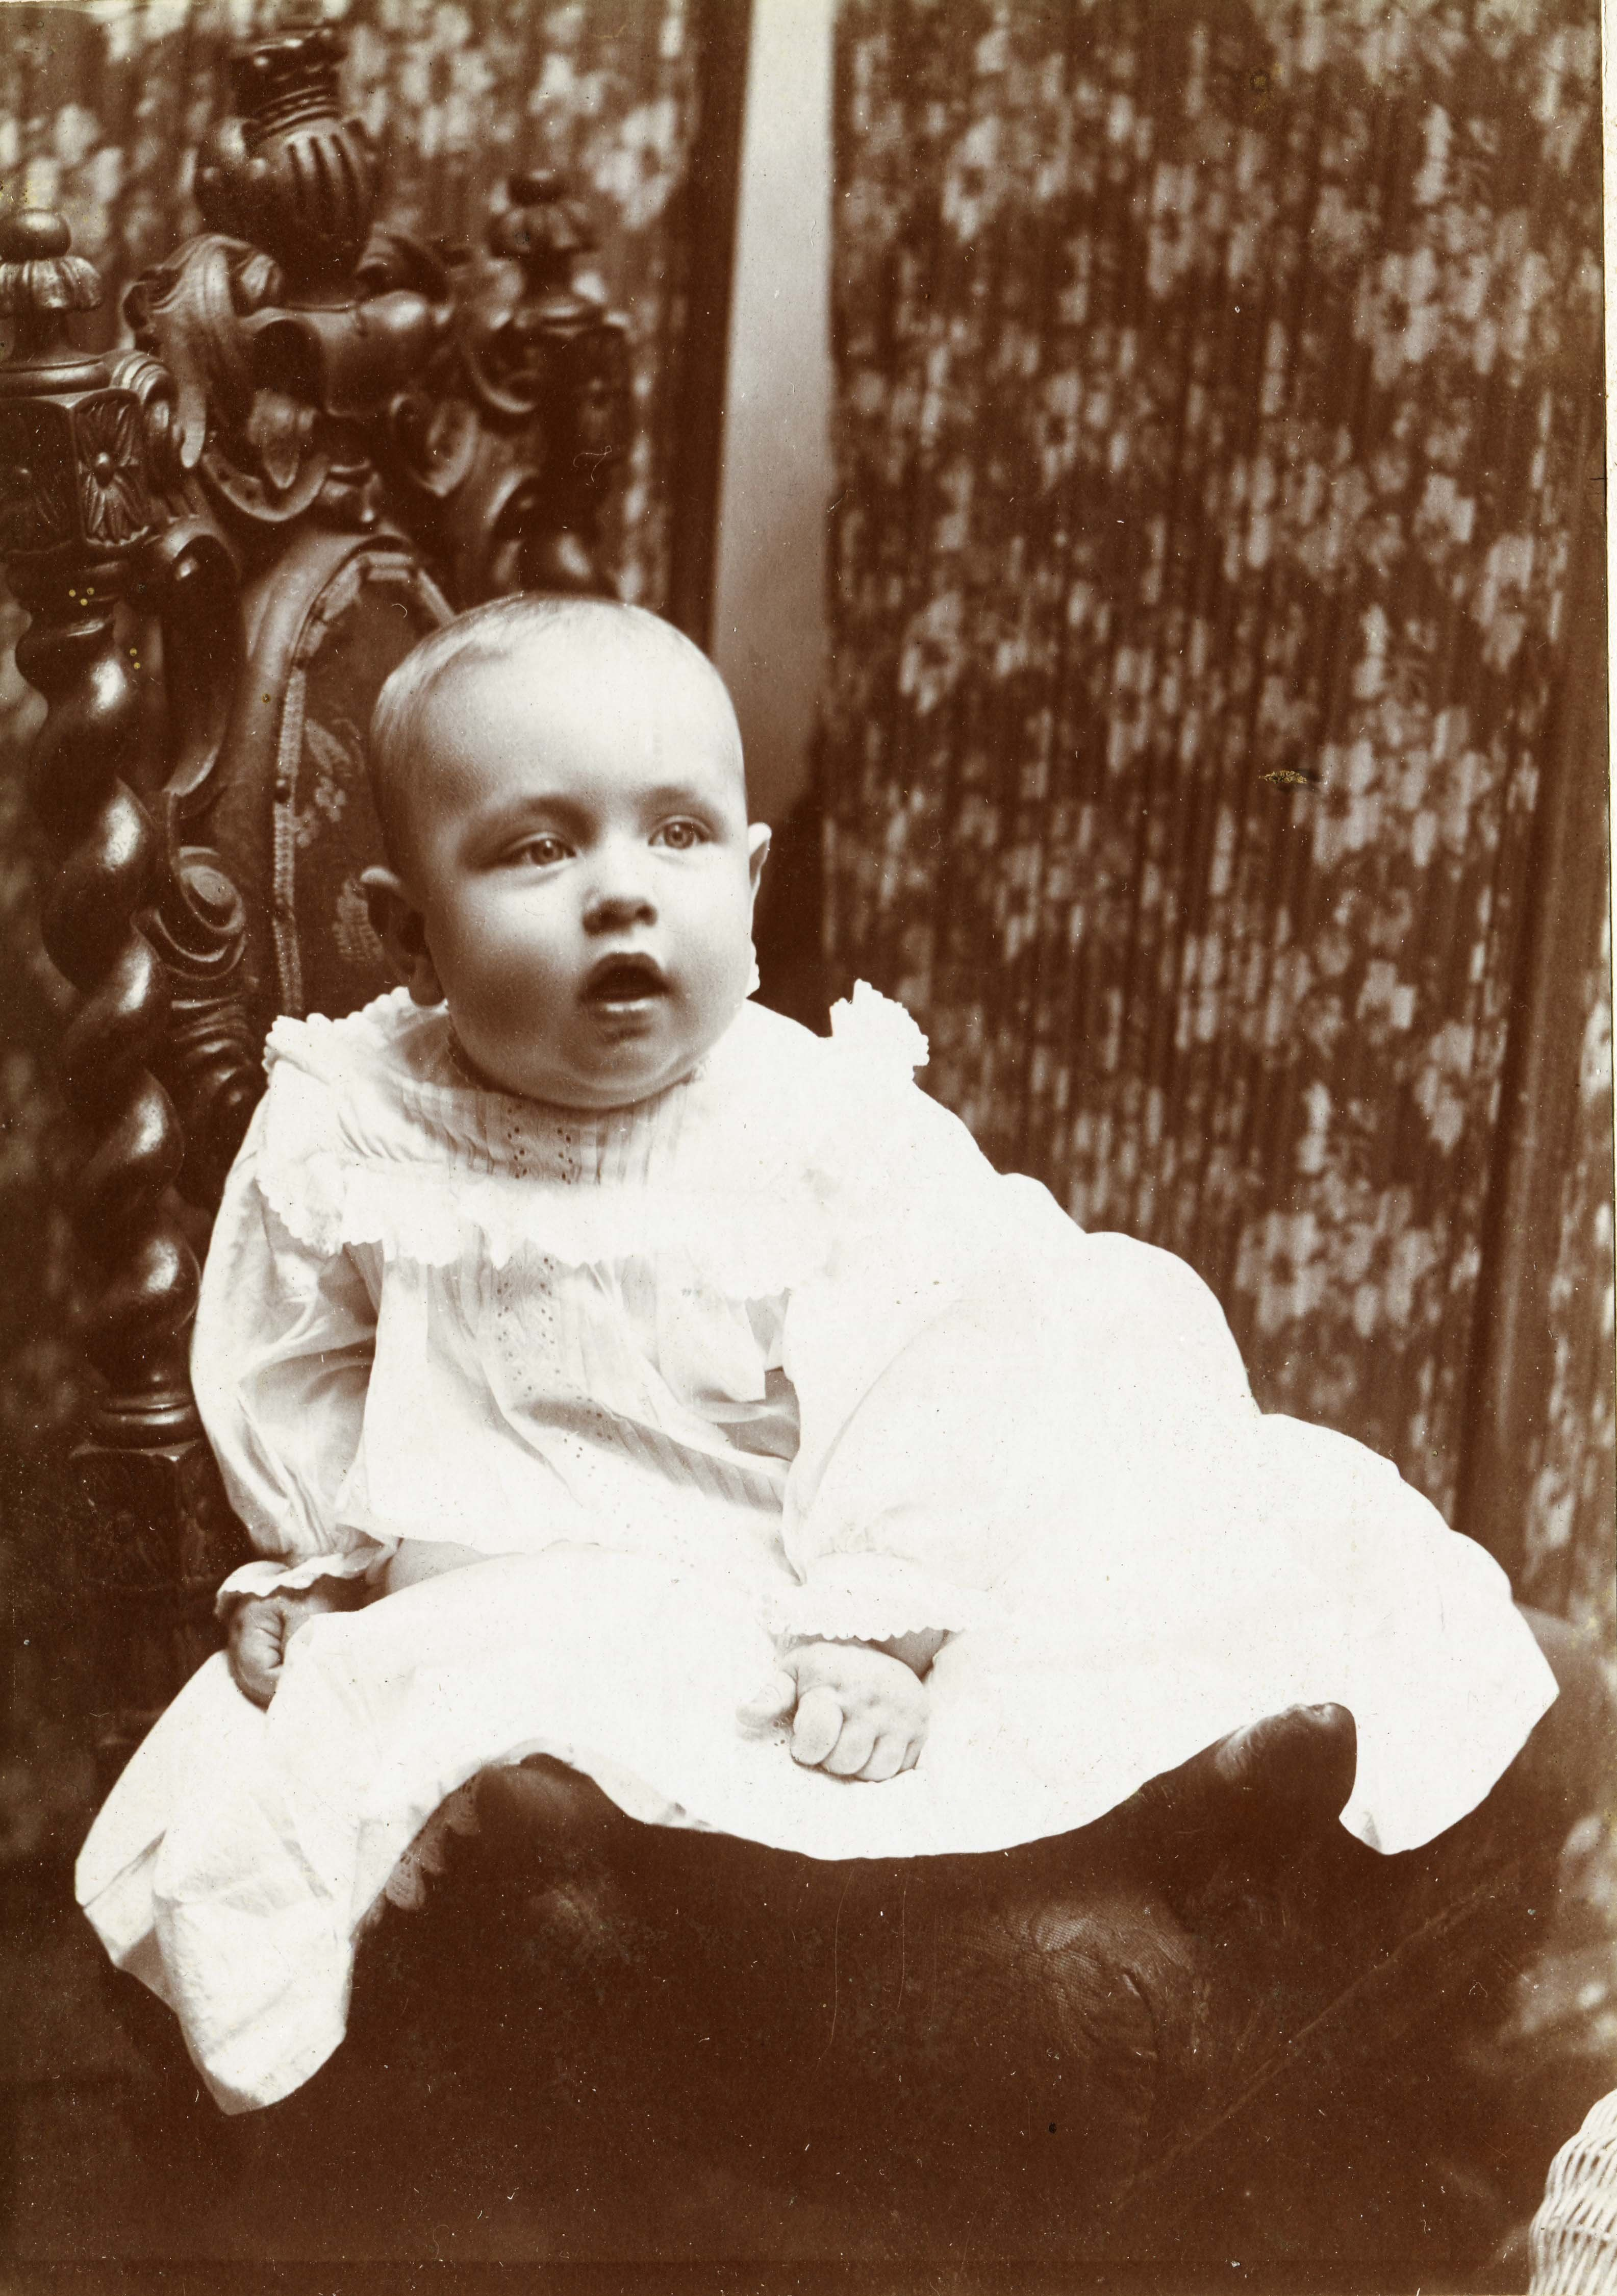 The most popular names for babies born in the 1880s were Mary for girls and John for boys.